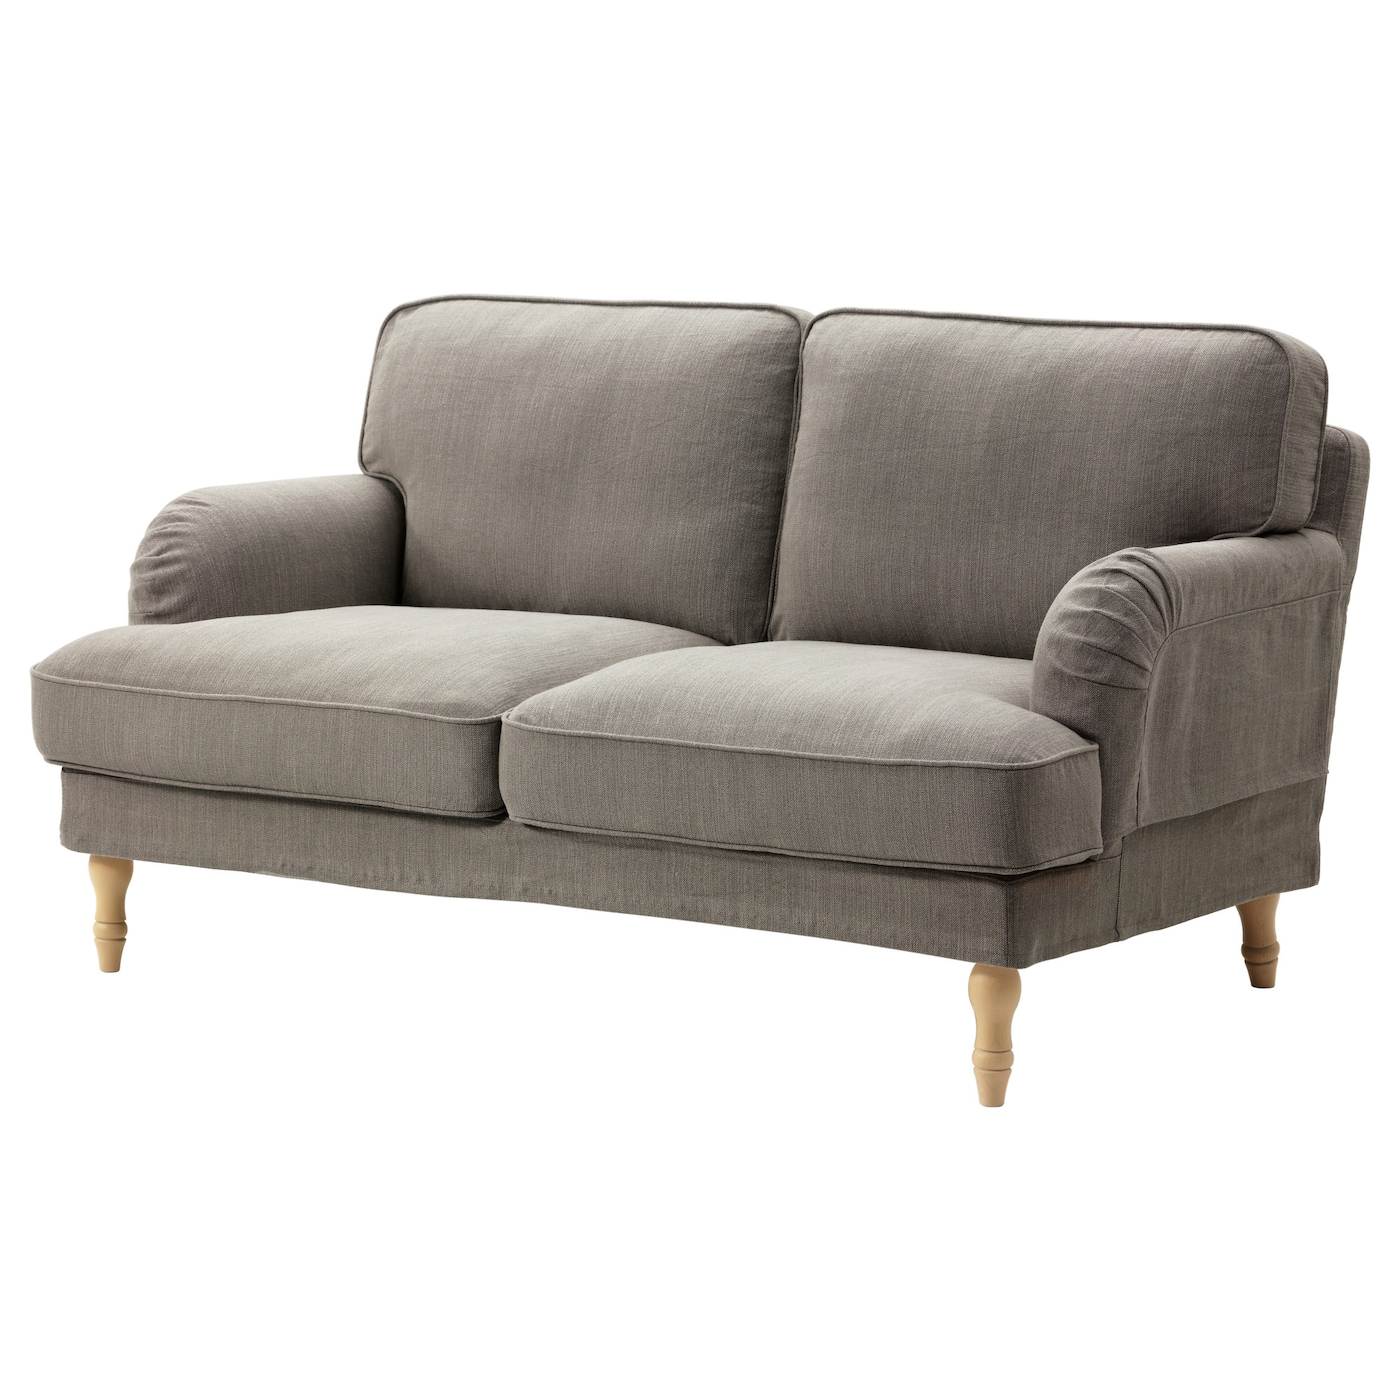 STOCKSUND Two Seat Sofa Nolhaga Grey Beige Light Brown